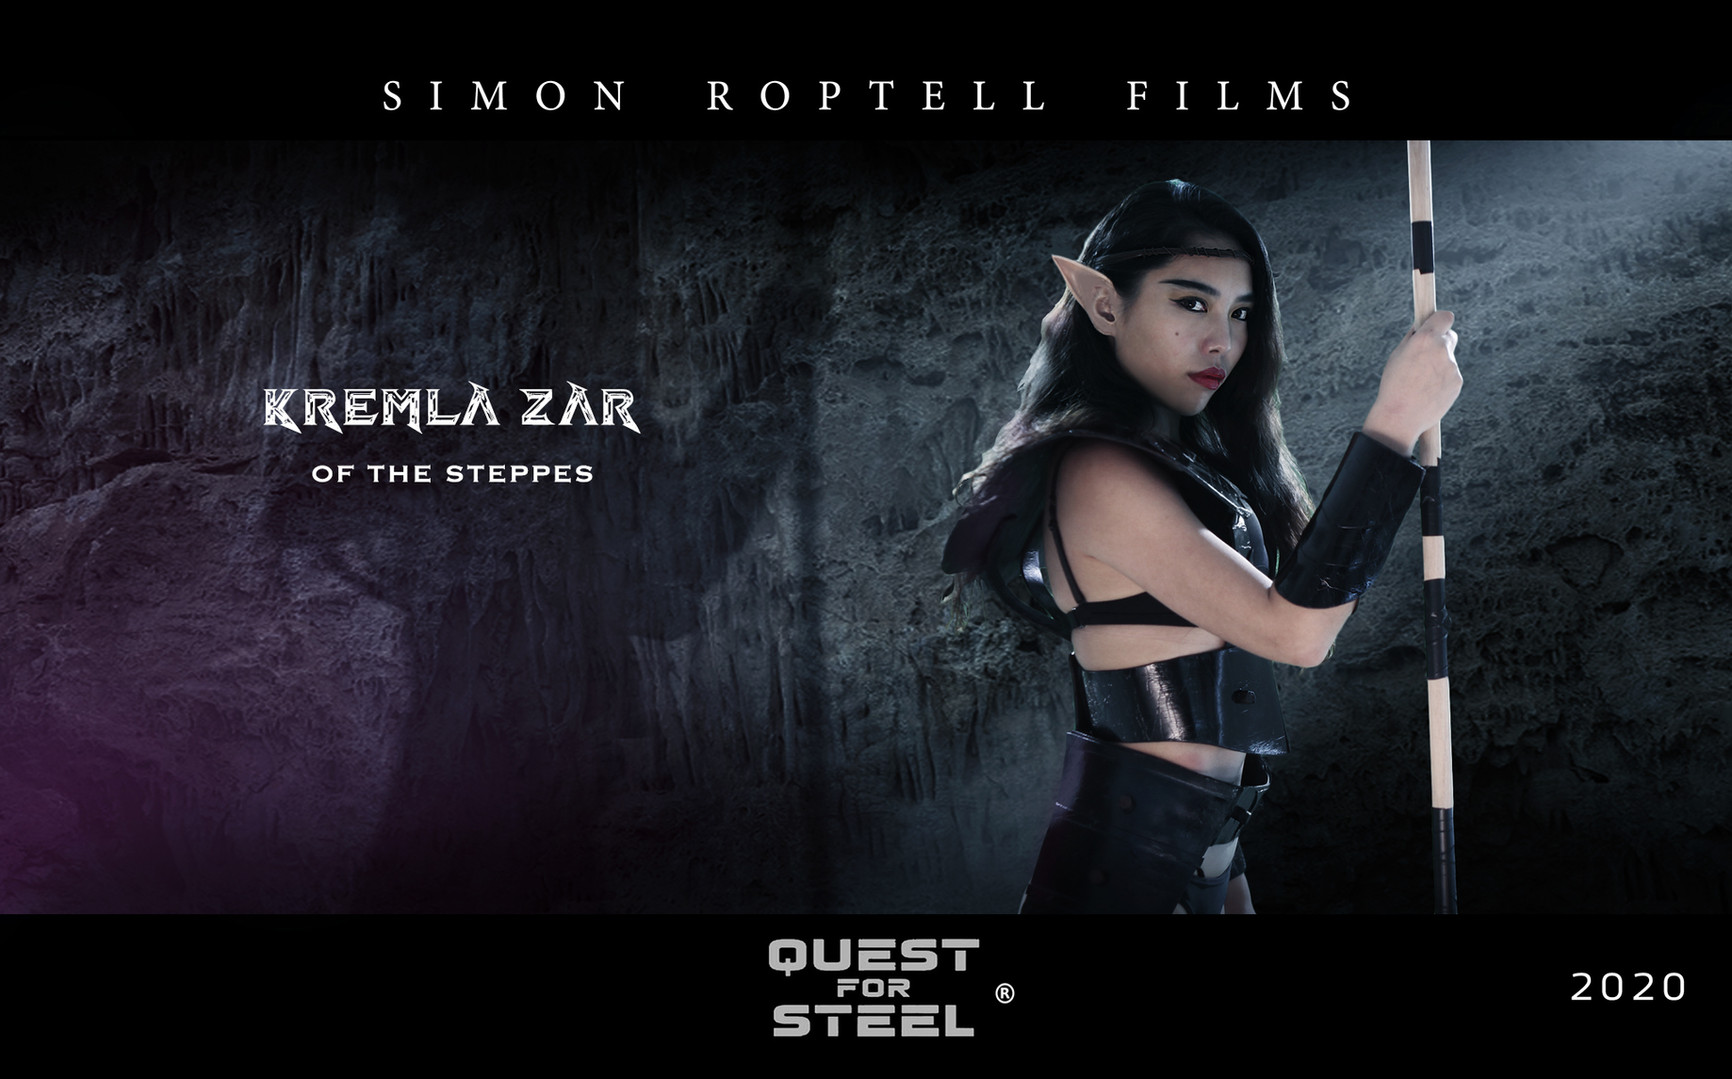 KREMLA ZAR Quest for Steel. Fantasy movi